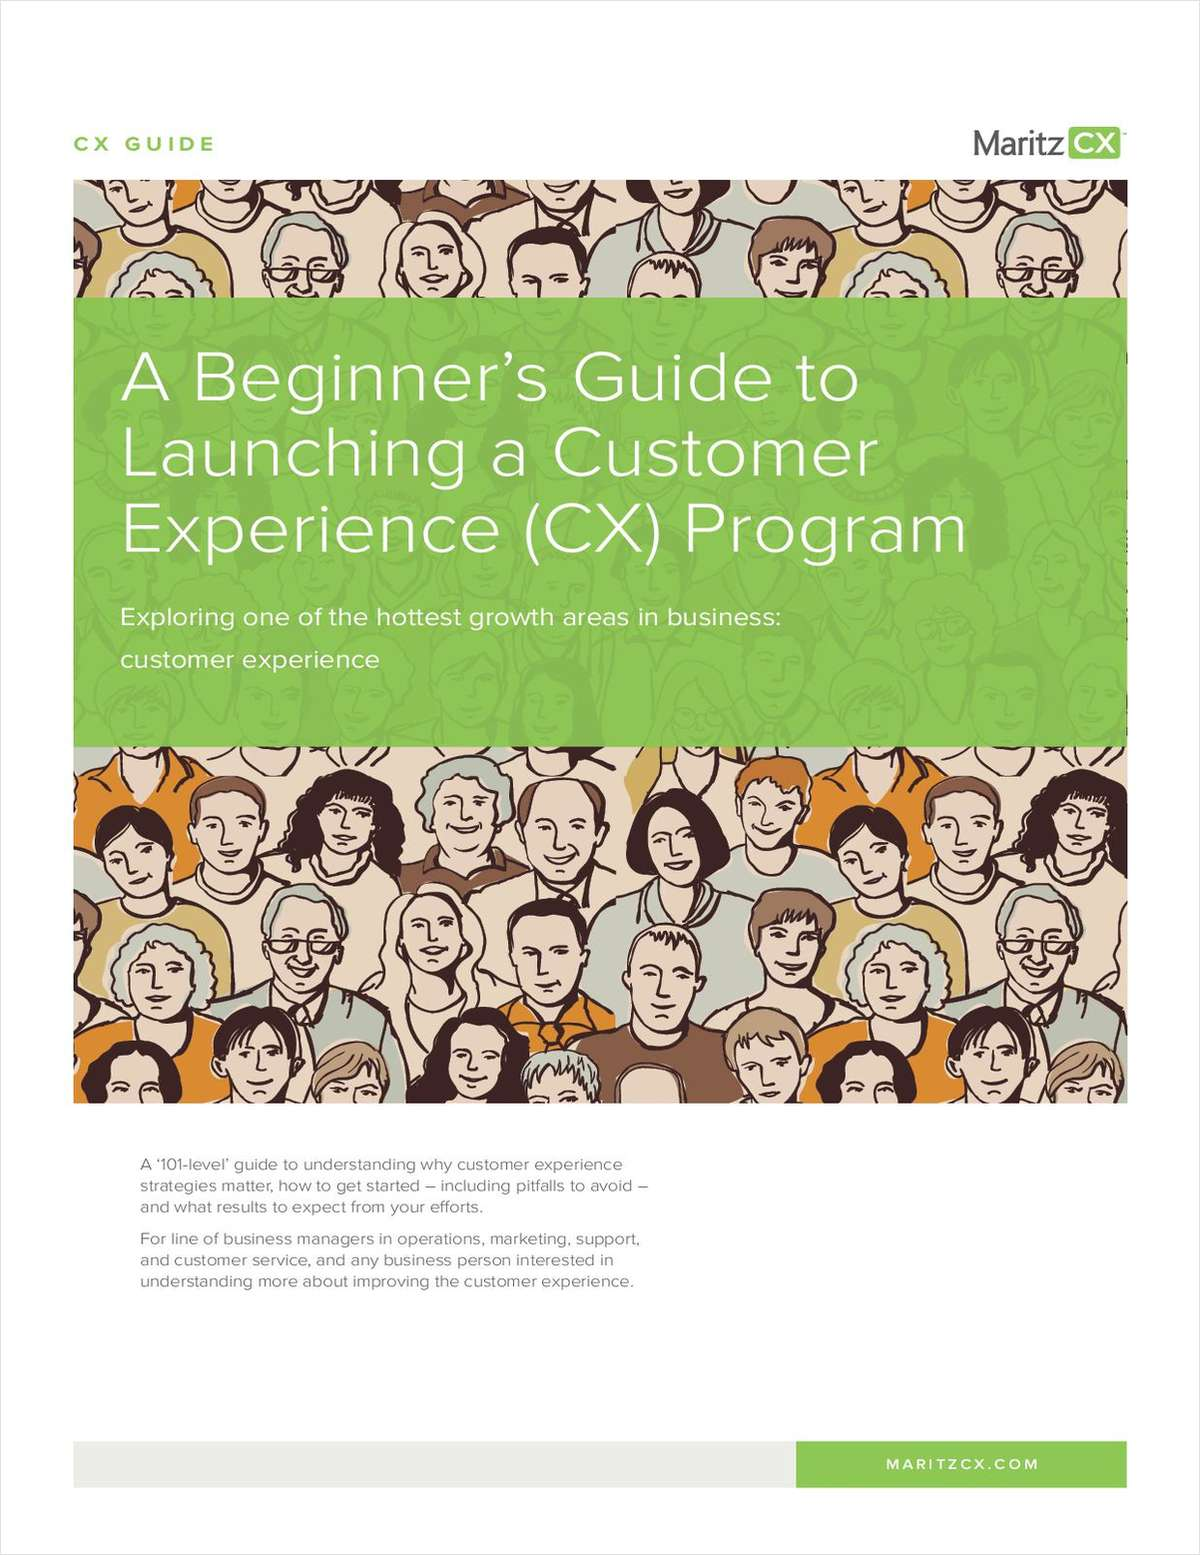 A Beginner's Guide to Launching a Customer Experience (CX) Program